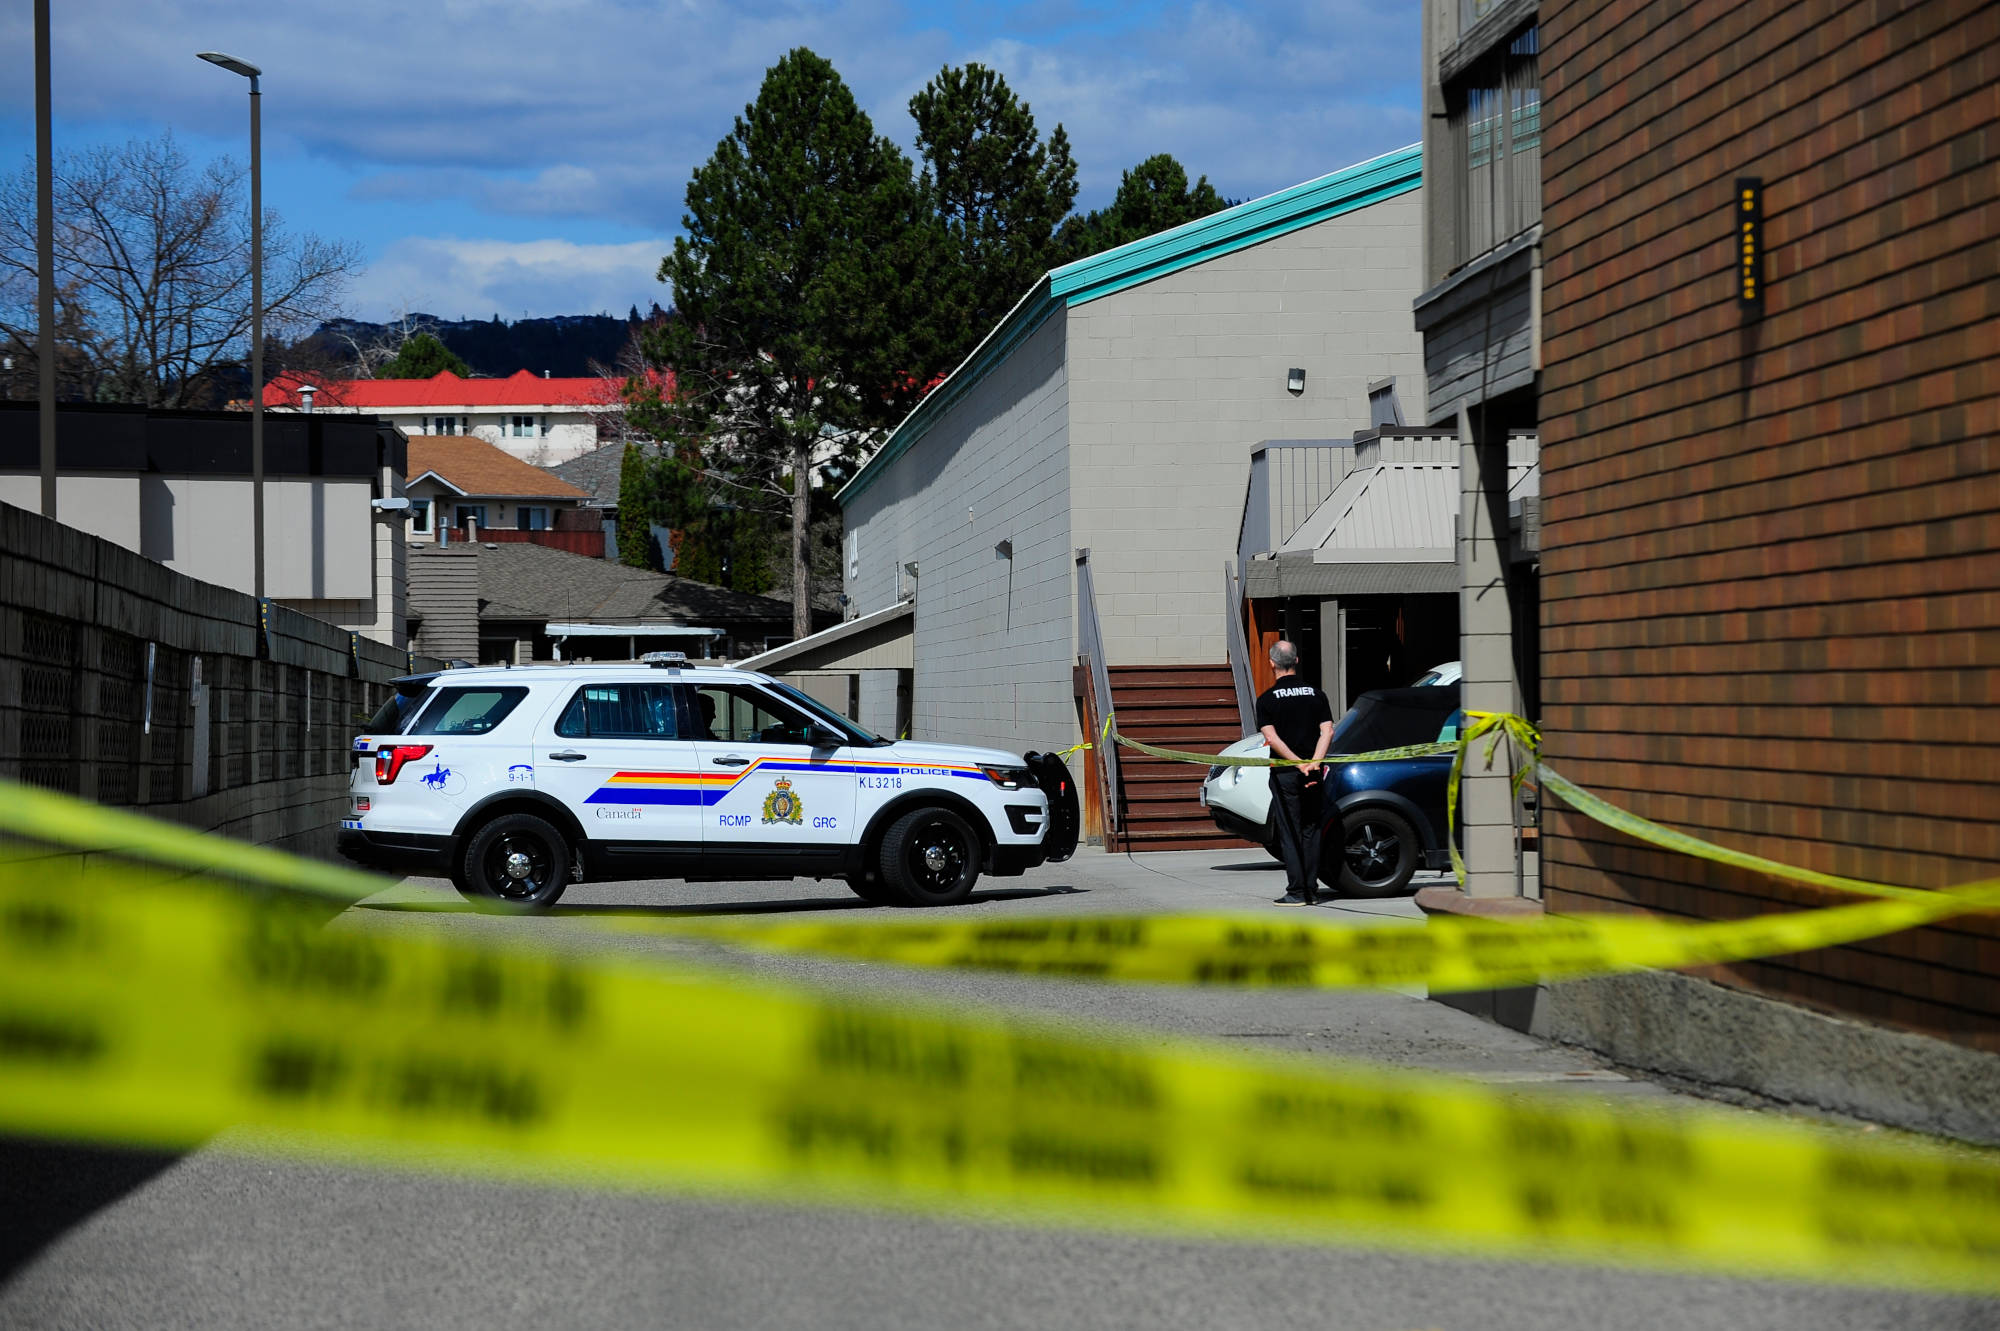 RCMP cruisers on scene at Global Fitness in Kelowna after a shooting on the morning of March 29, 2021. (Michael Rodriguez/Capital News)